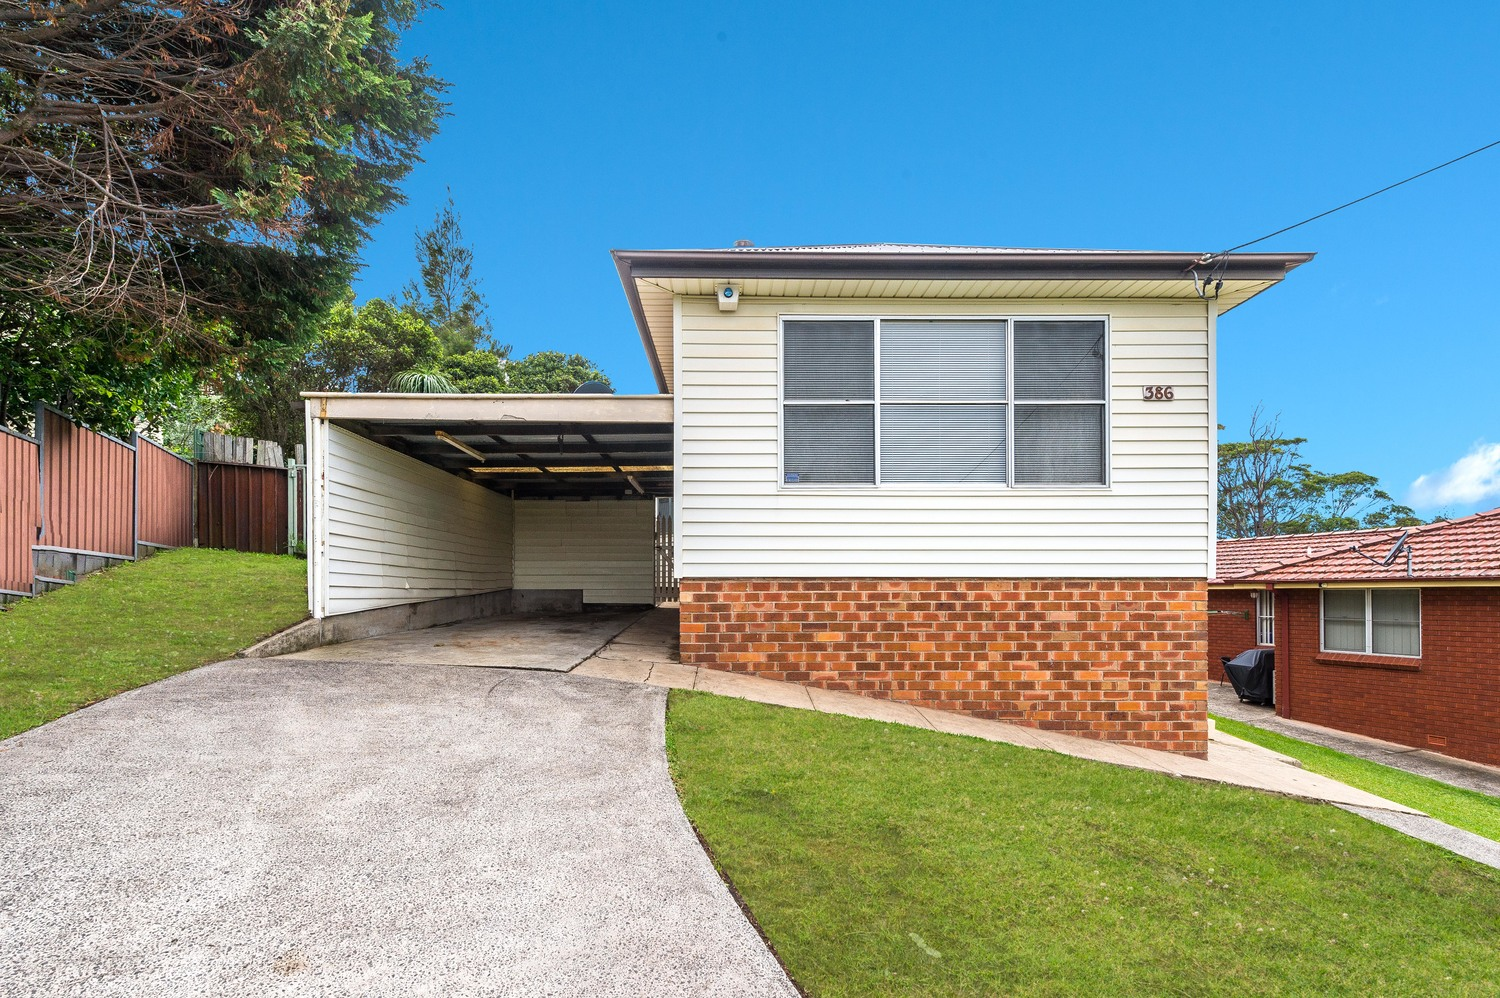 386 Northcliffe Drive, Lake Heights